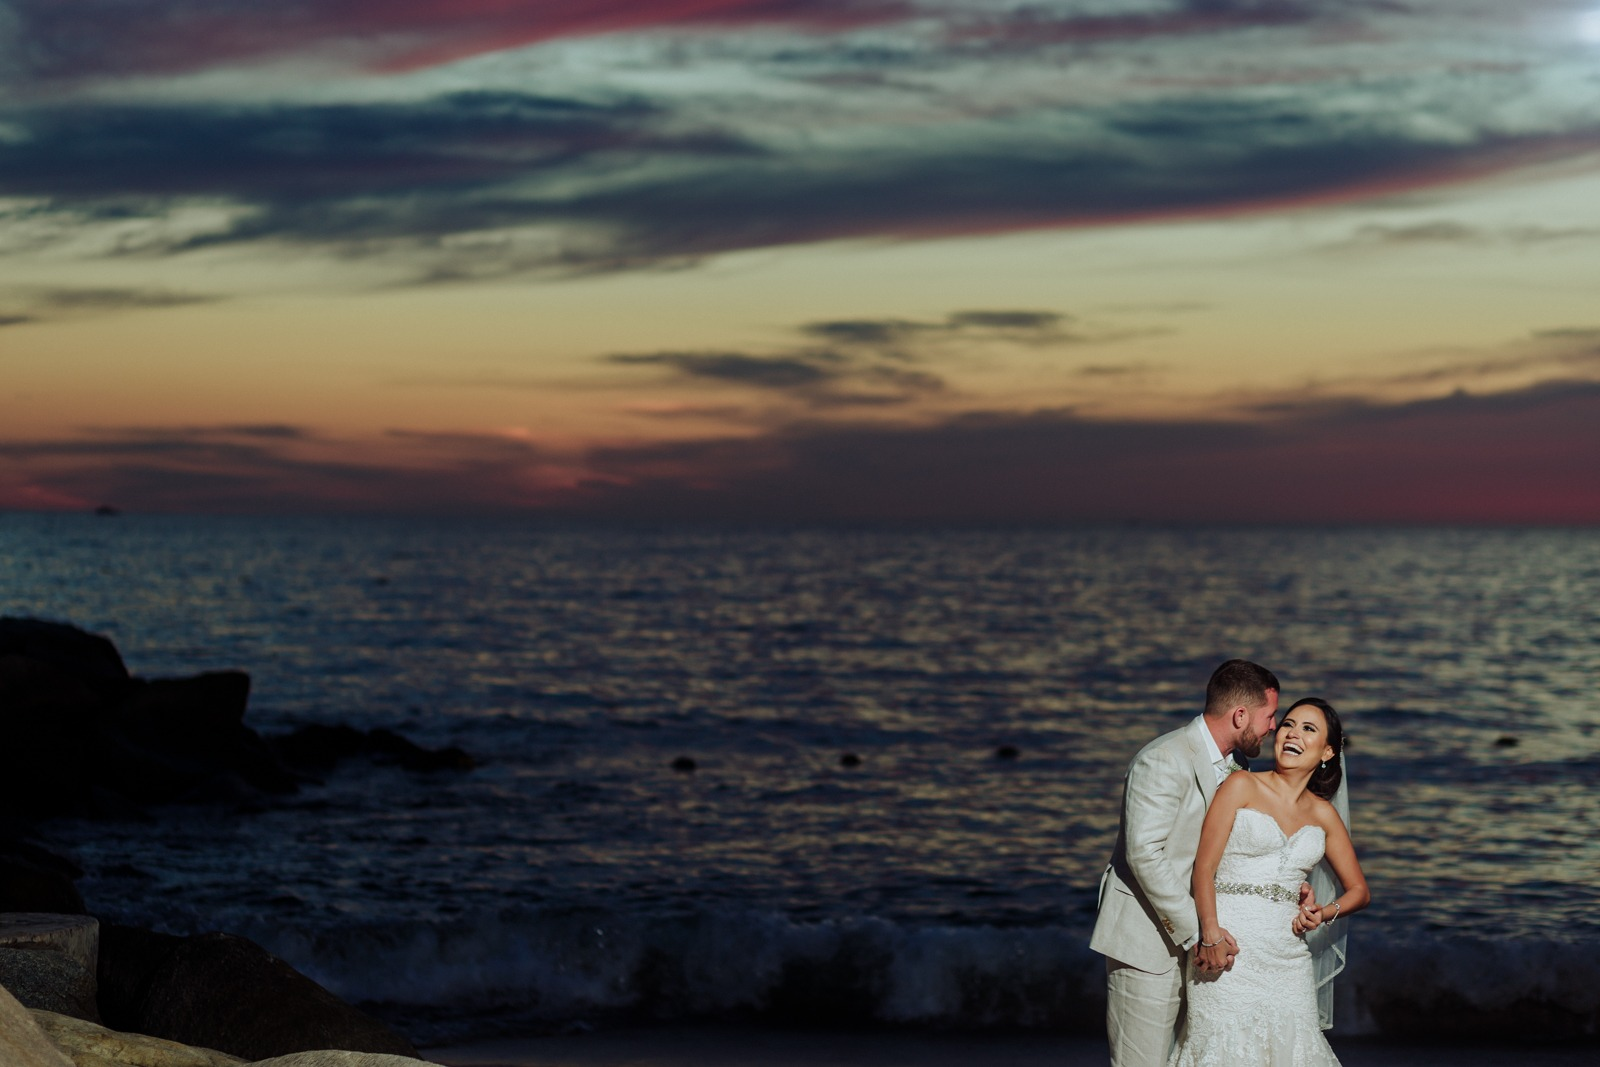 bride-groom-sunset-smile-ocean-sky-beach-moment-wedding